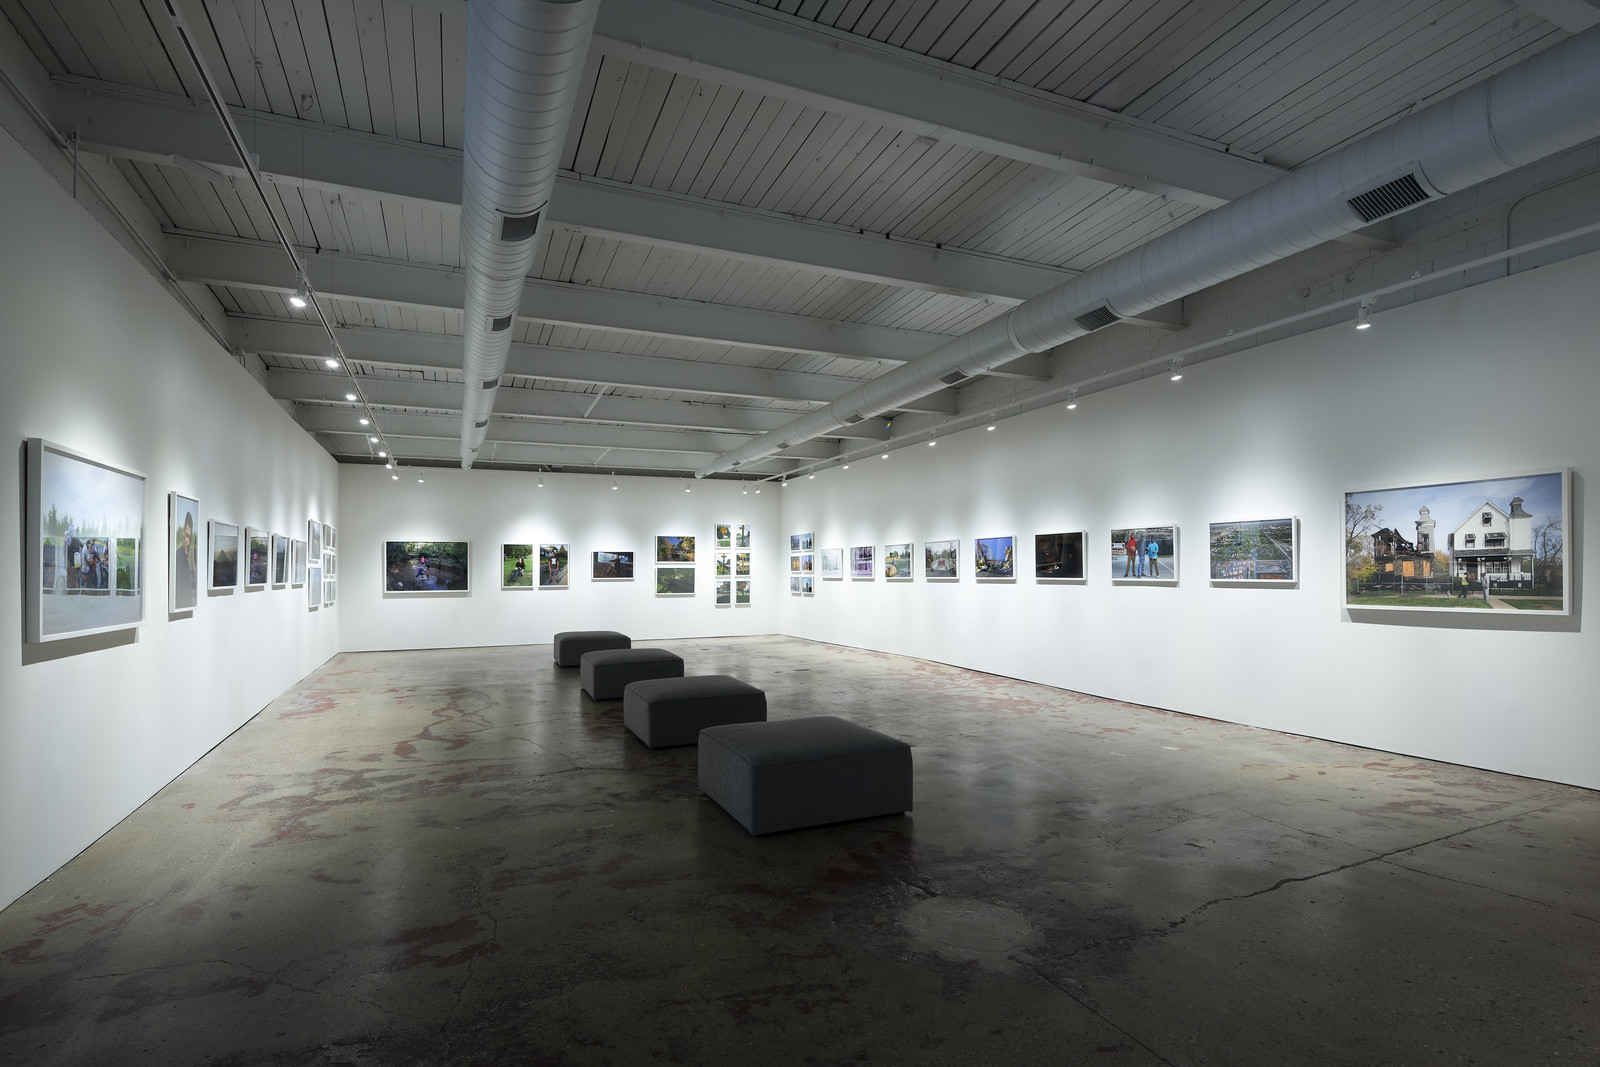 Three Communities Exhibition at Tube Factory Art Space